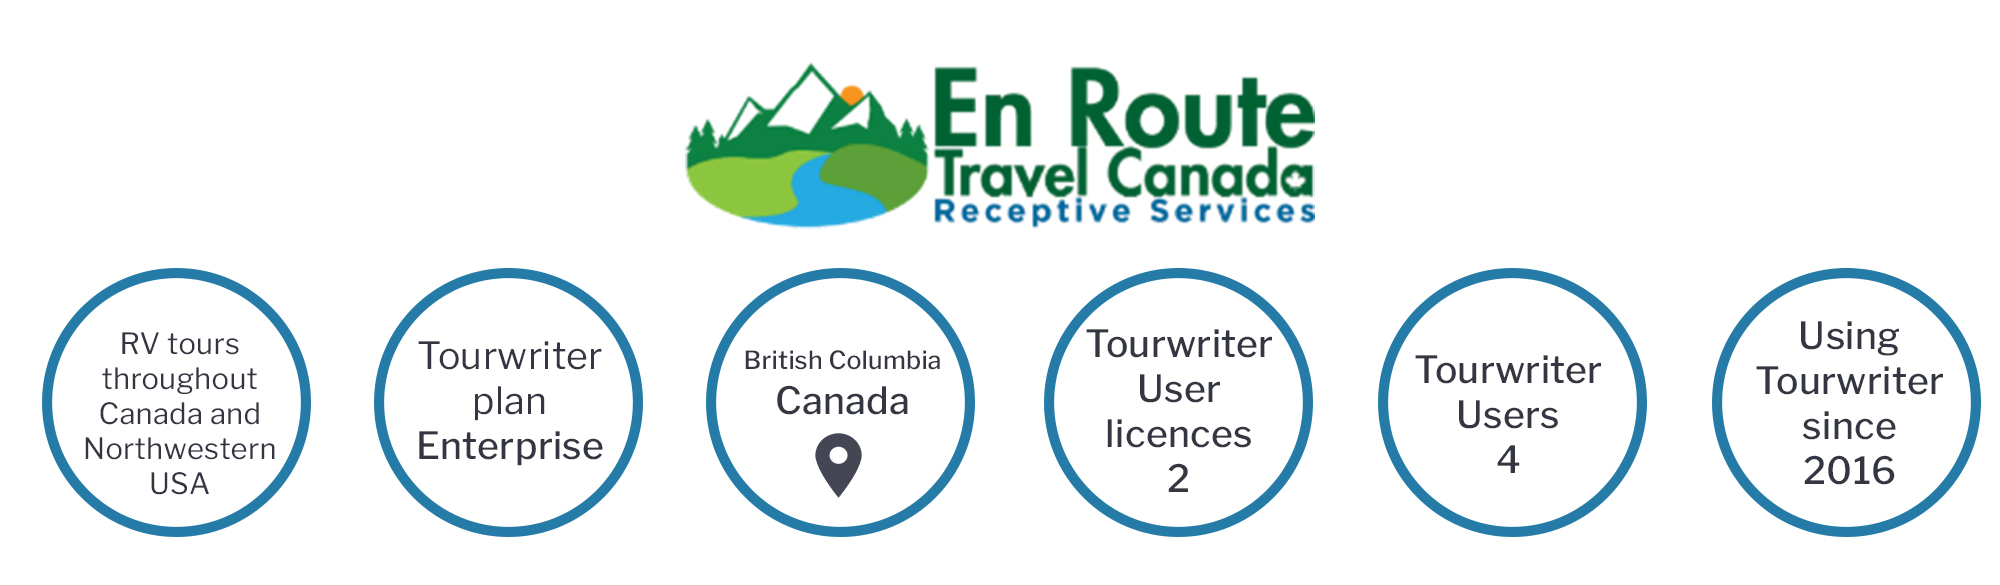 about en route travel canada